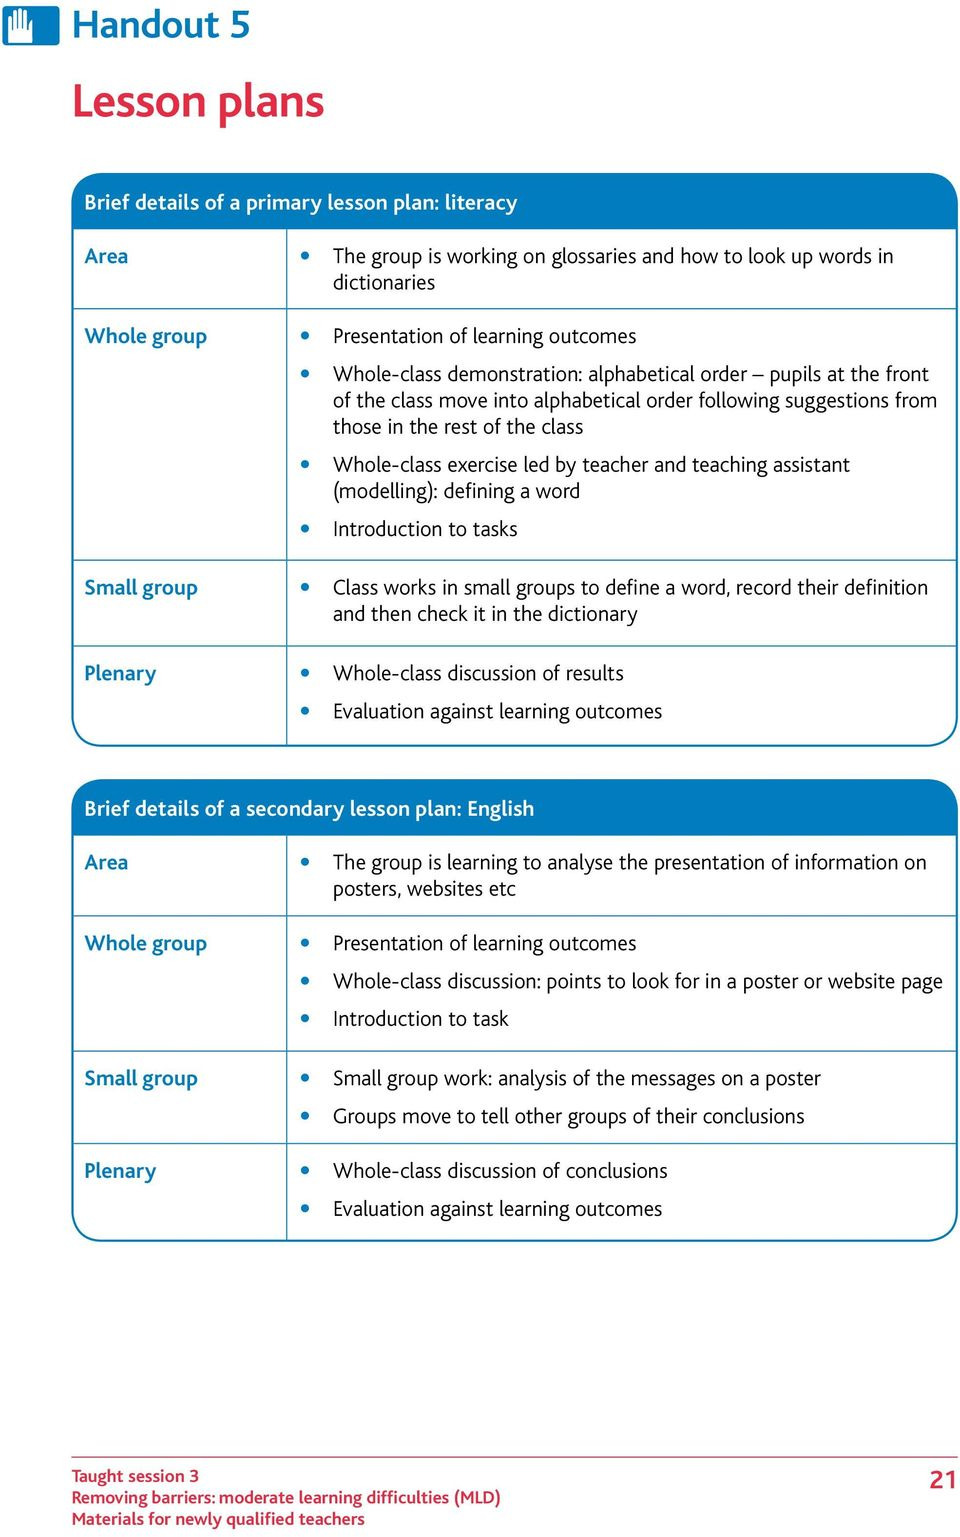 exercise led by teacher and teaching assistant (modelling): defining a word Introduction to tasks Class works in small groups to define a word, record their definition and then check it in the